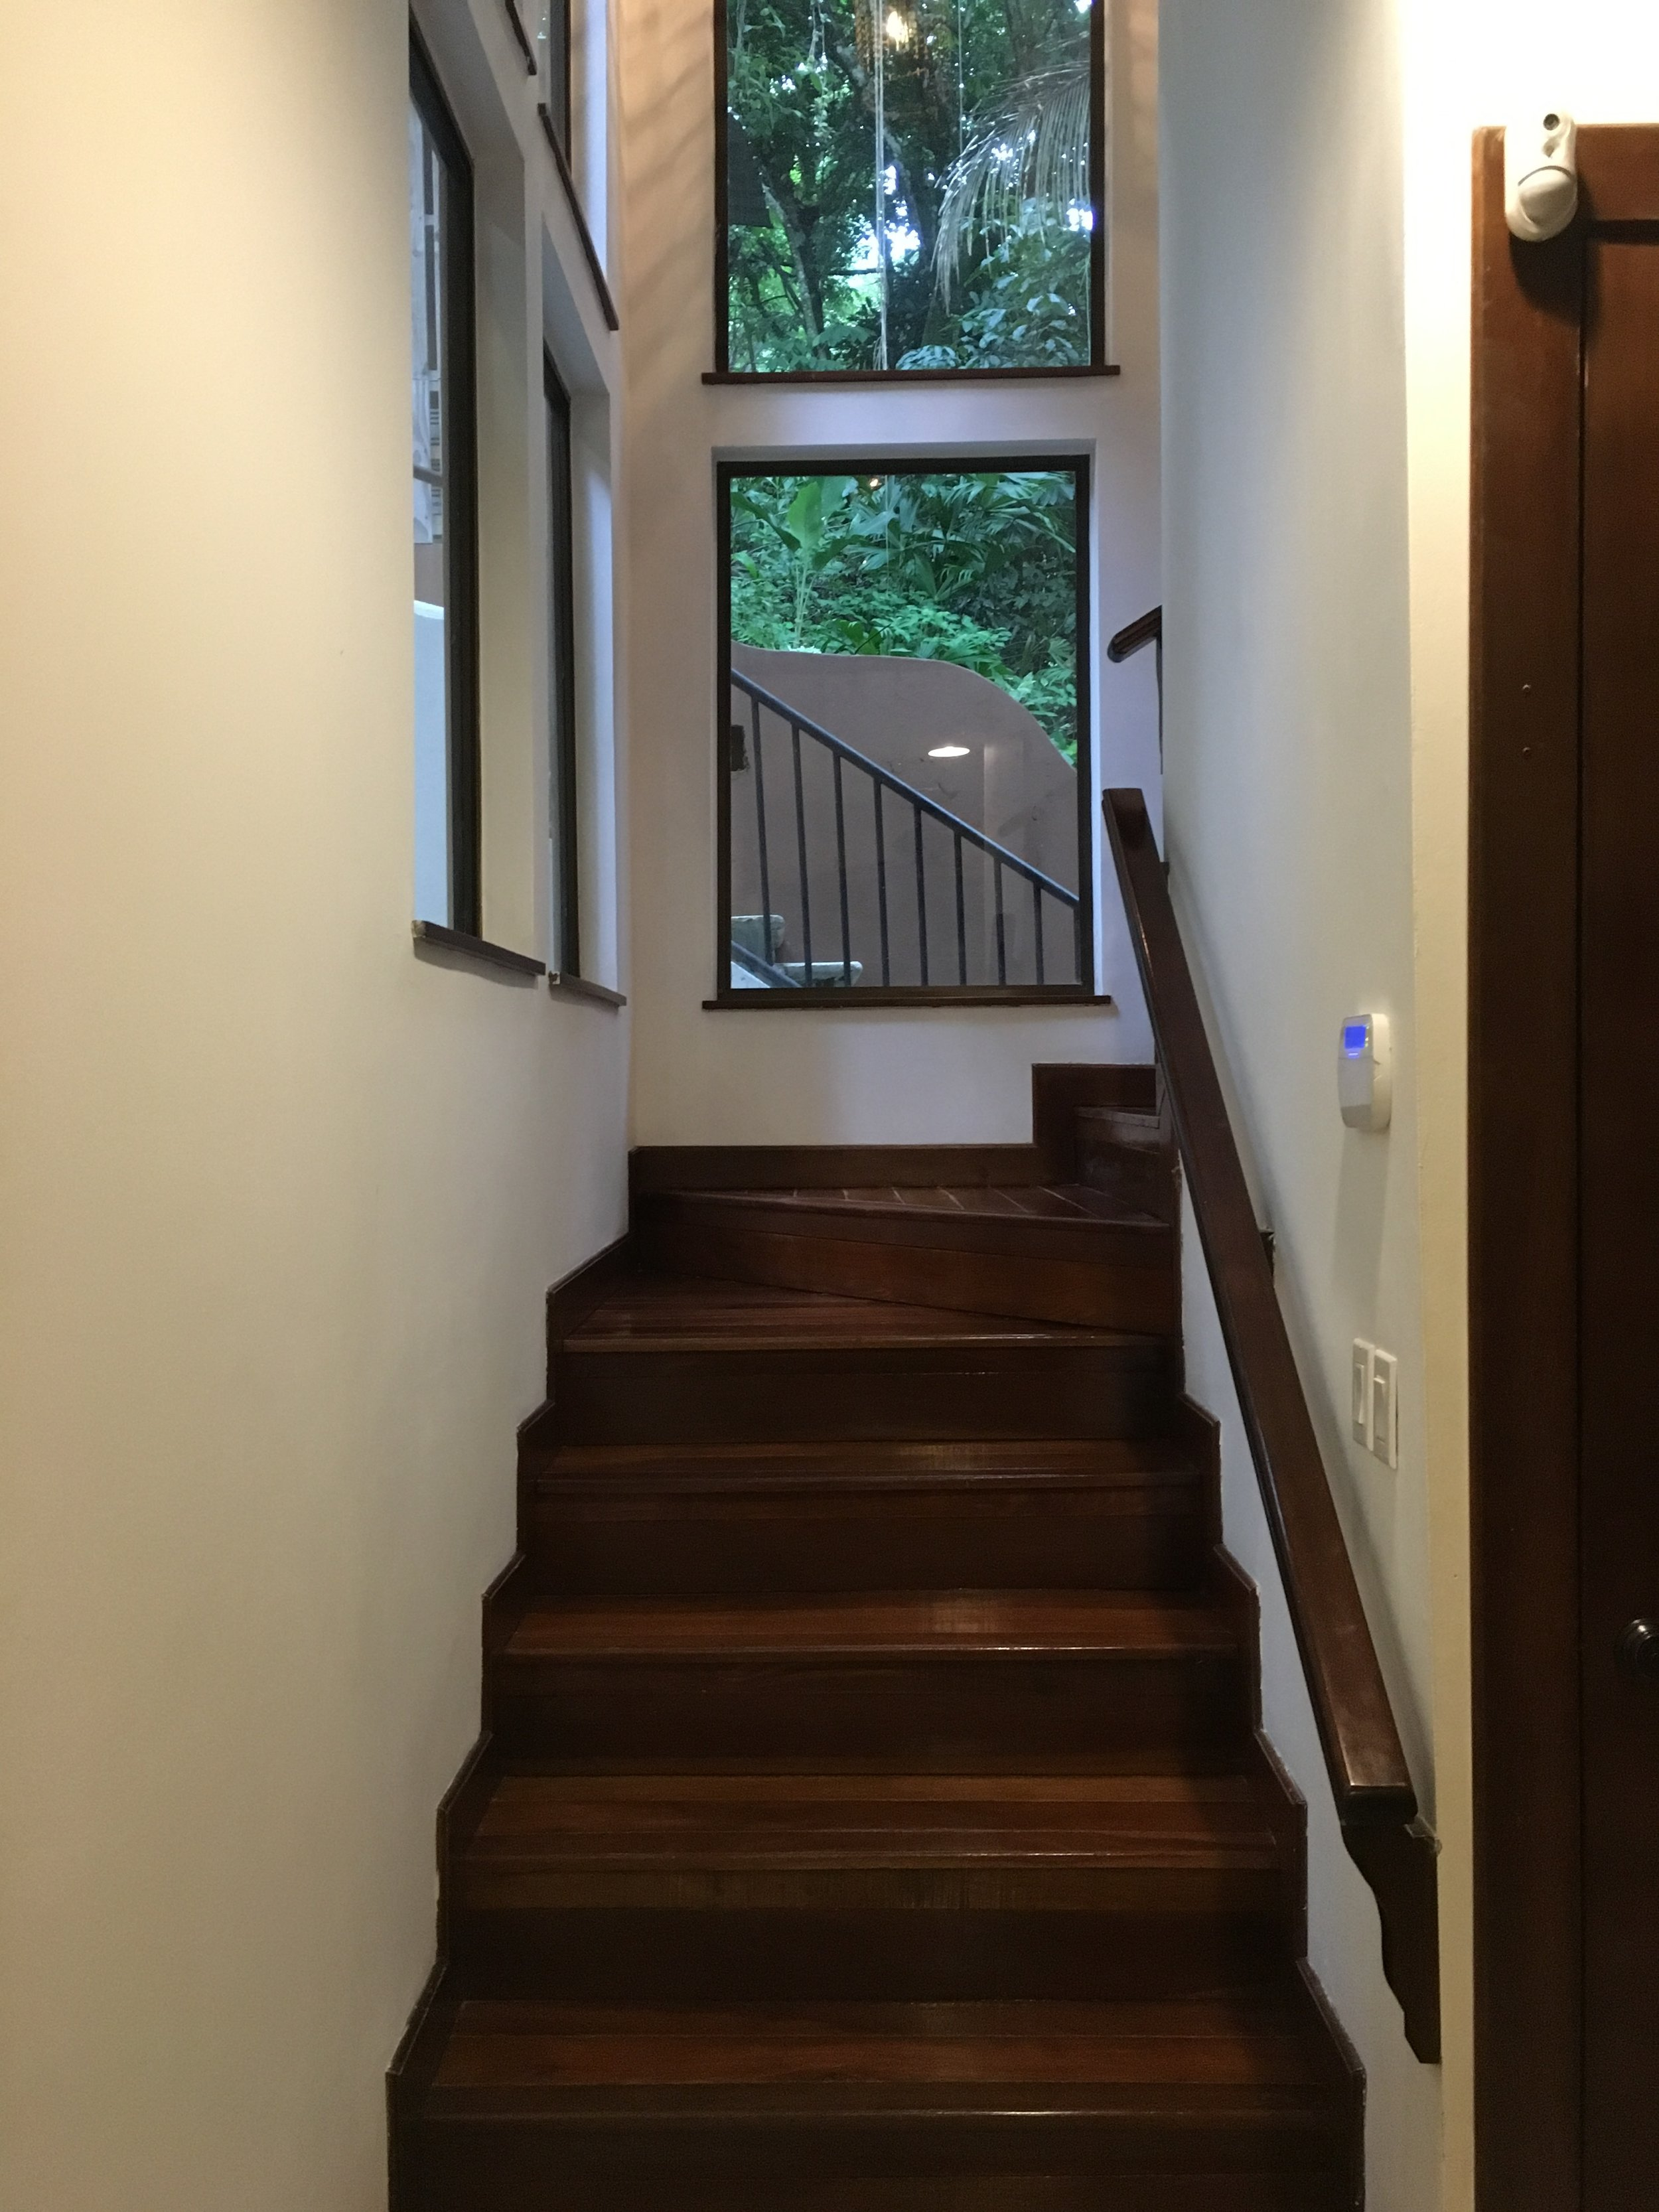 Stairs up to the living area